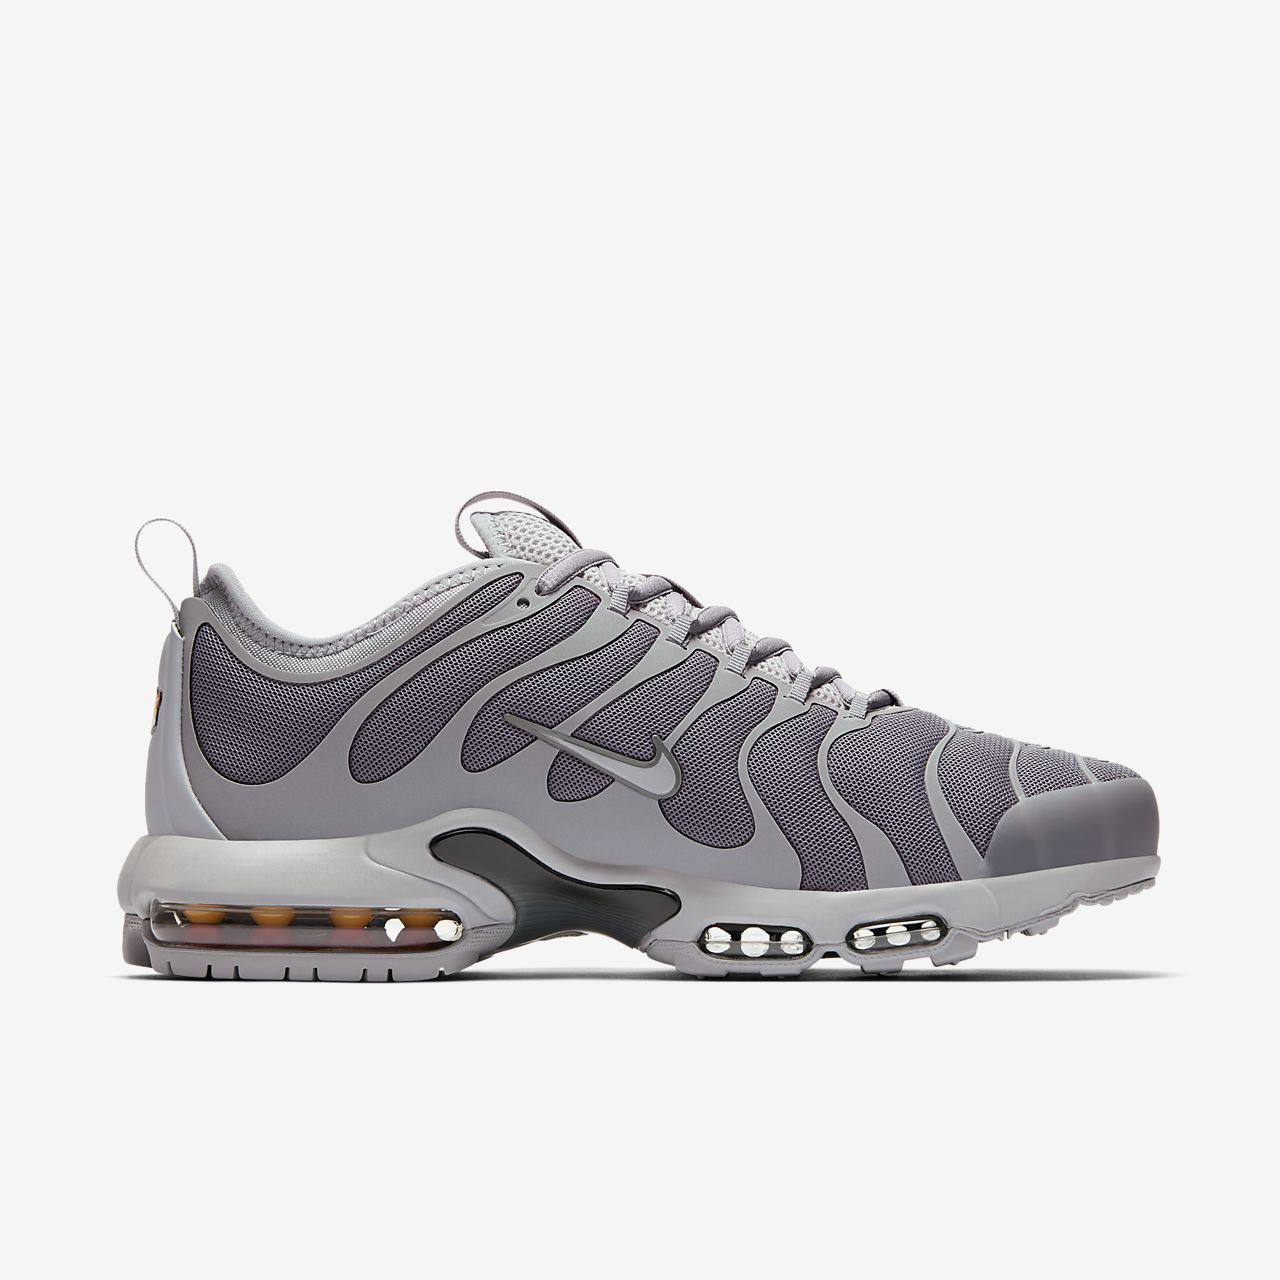 Chaussure Nike Air Max Plus TN Ultra SE pour Homme. Nike FR